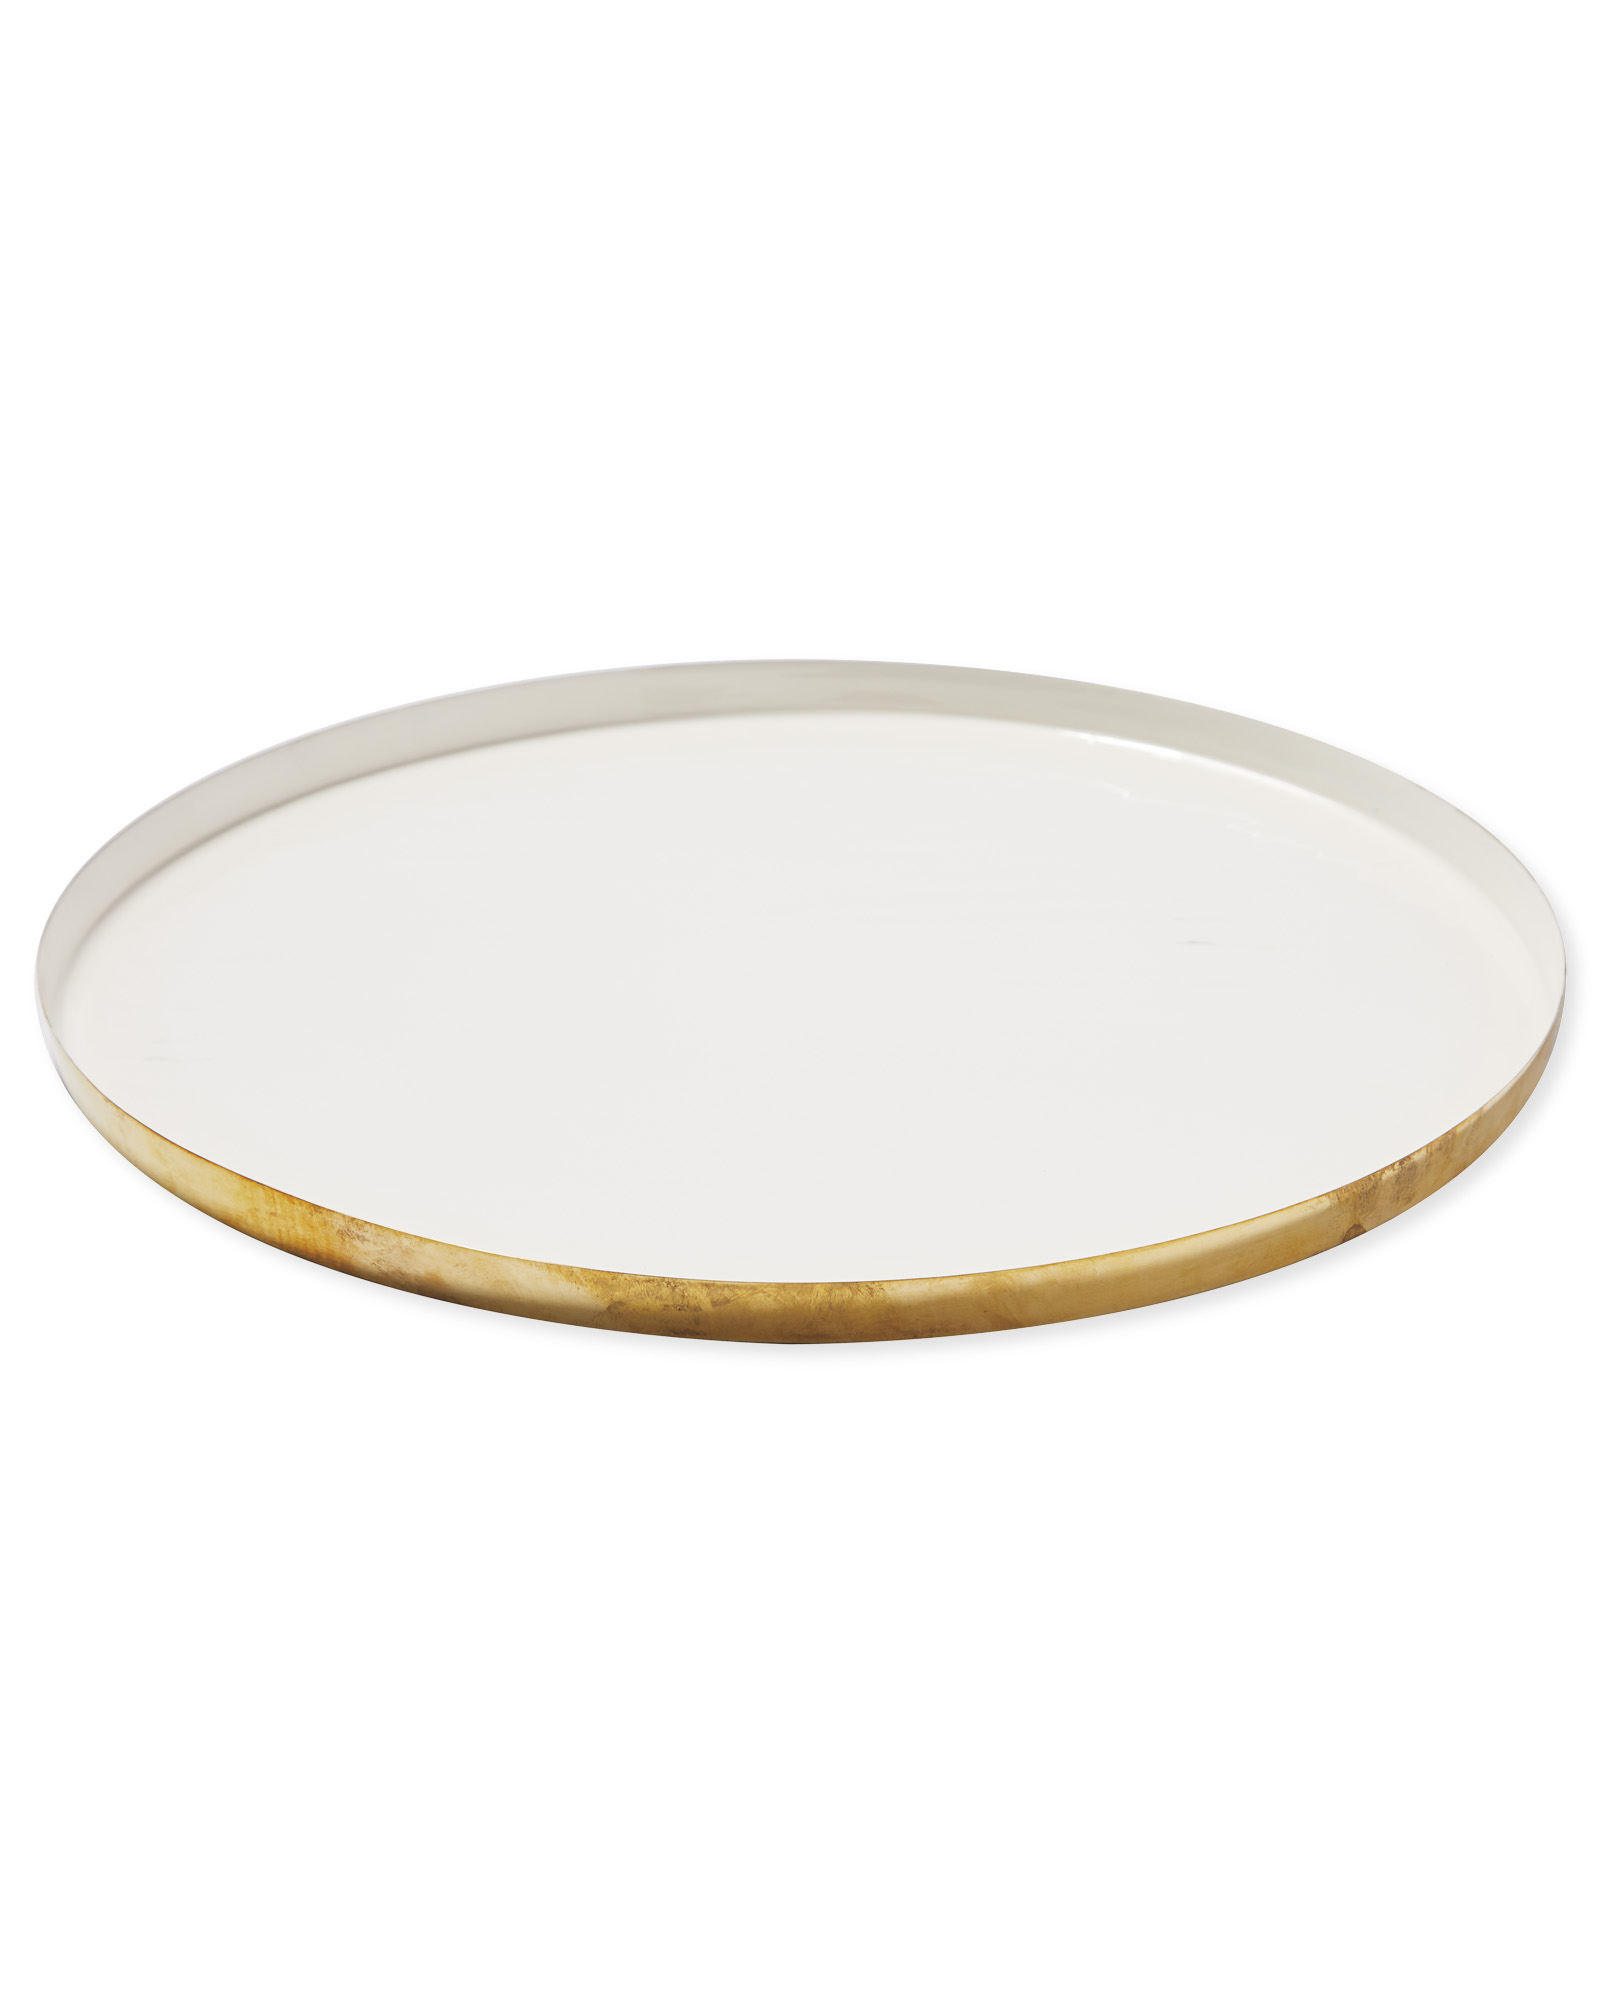 Marine Brass Trays (Set of 3)